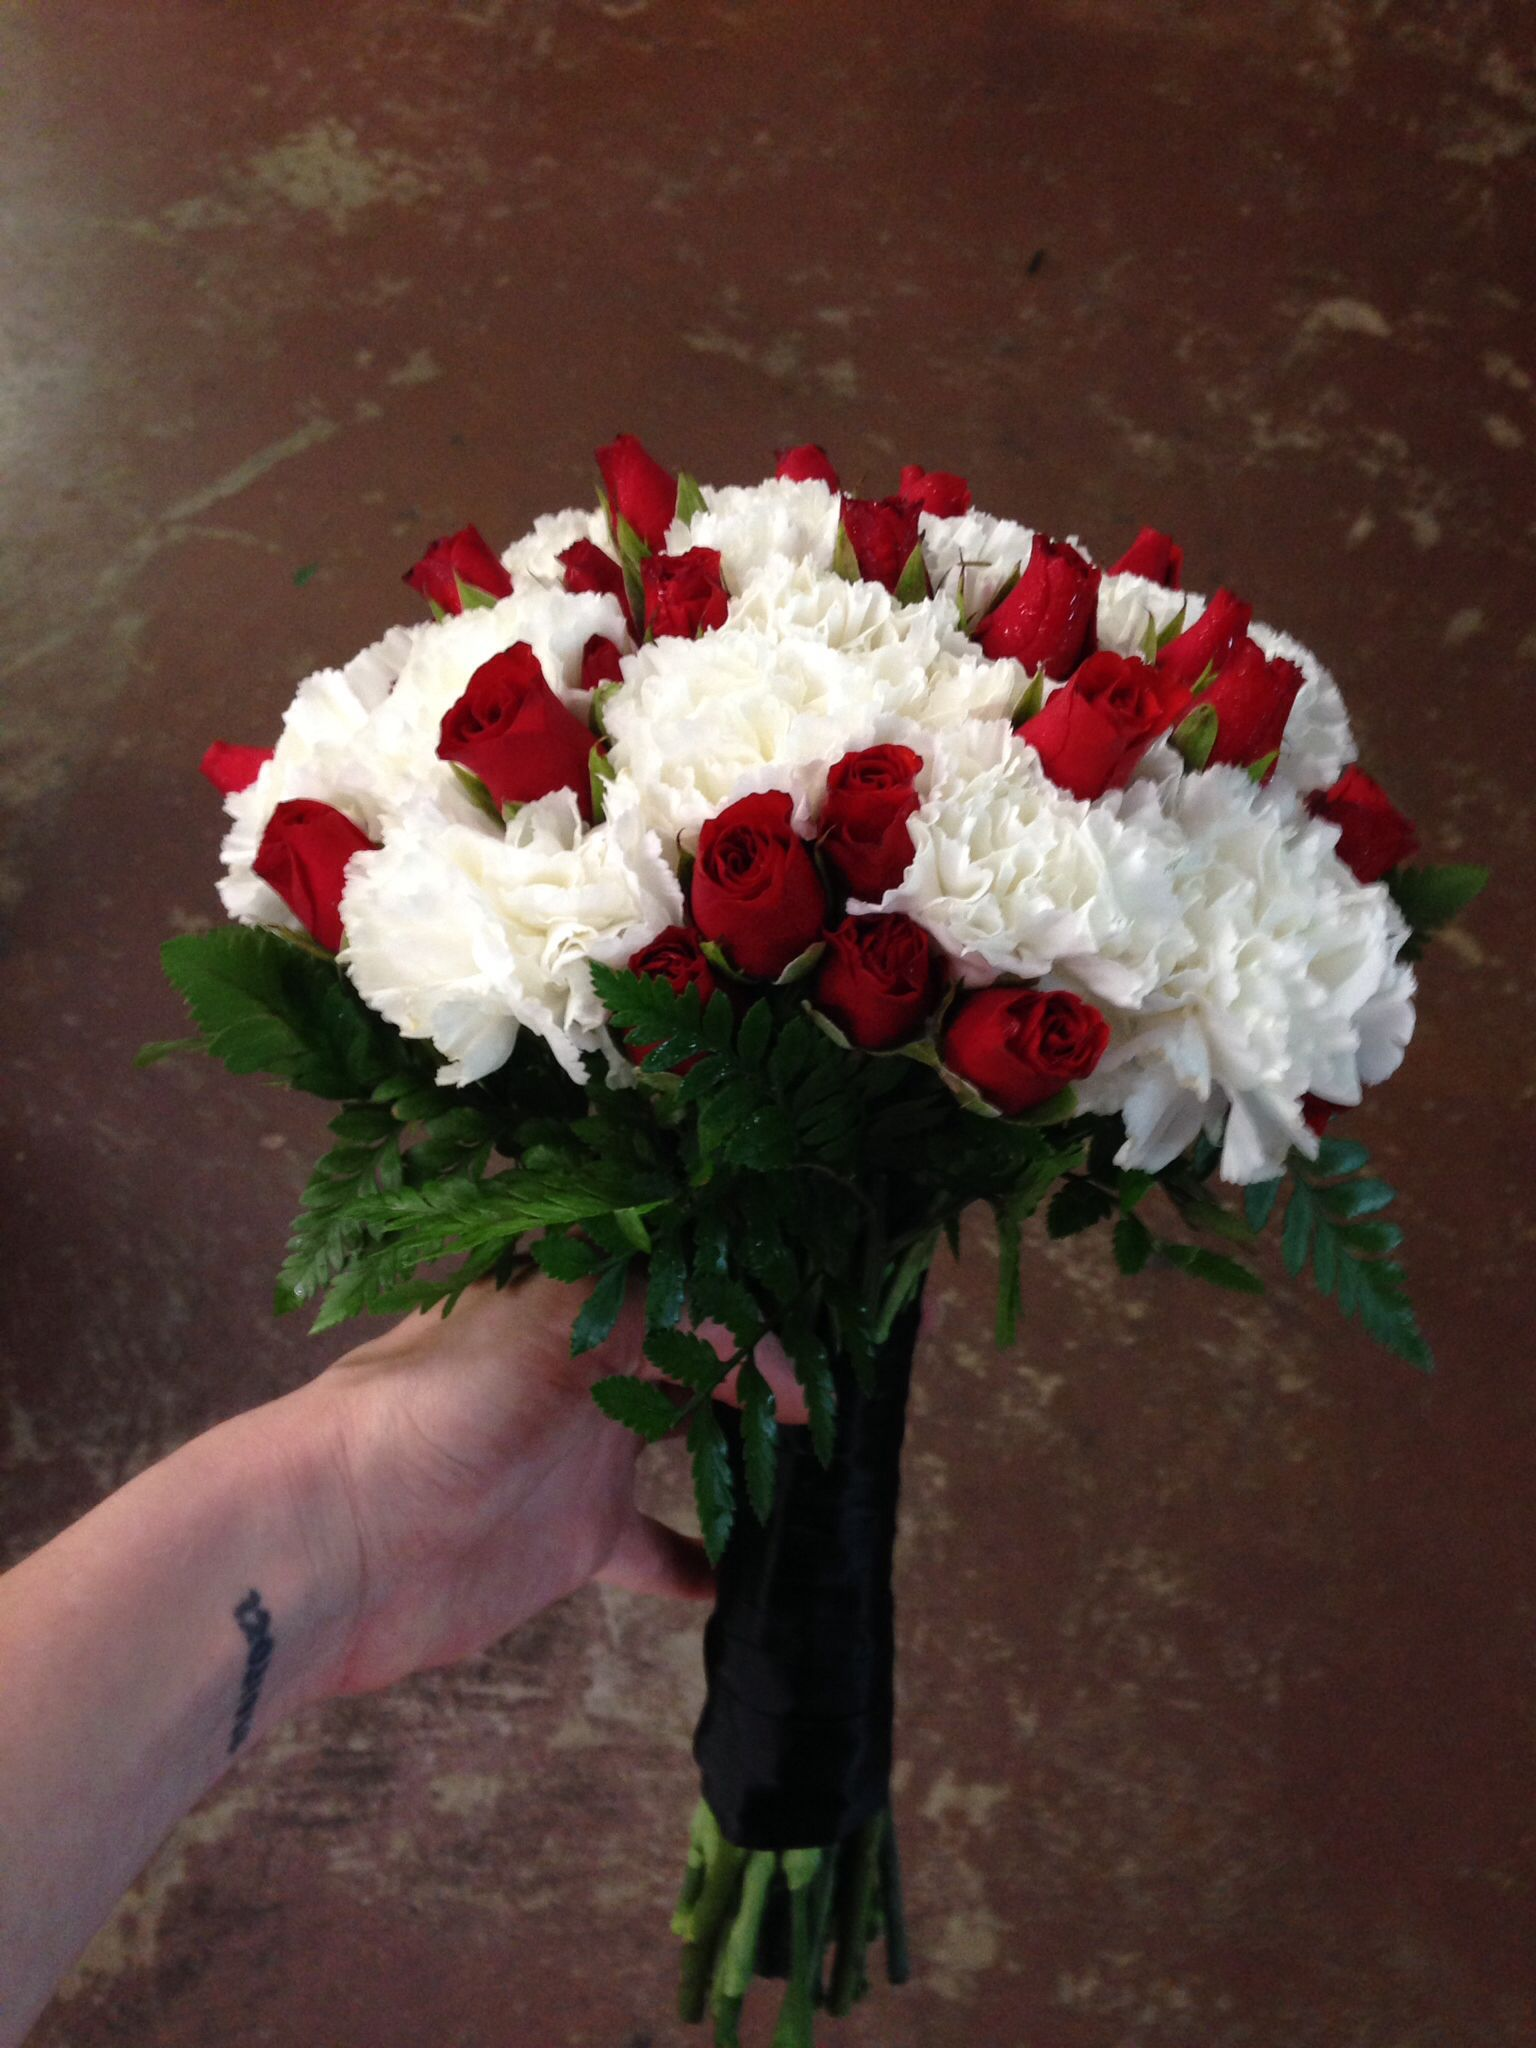 Bridal Bouquet Red White And Black Carnations And Spray Roses